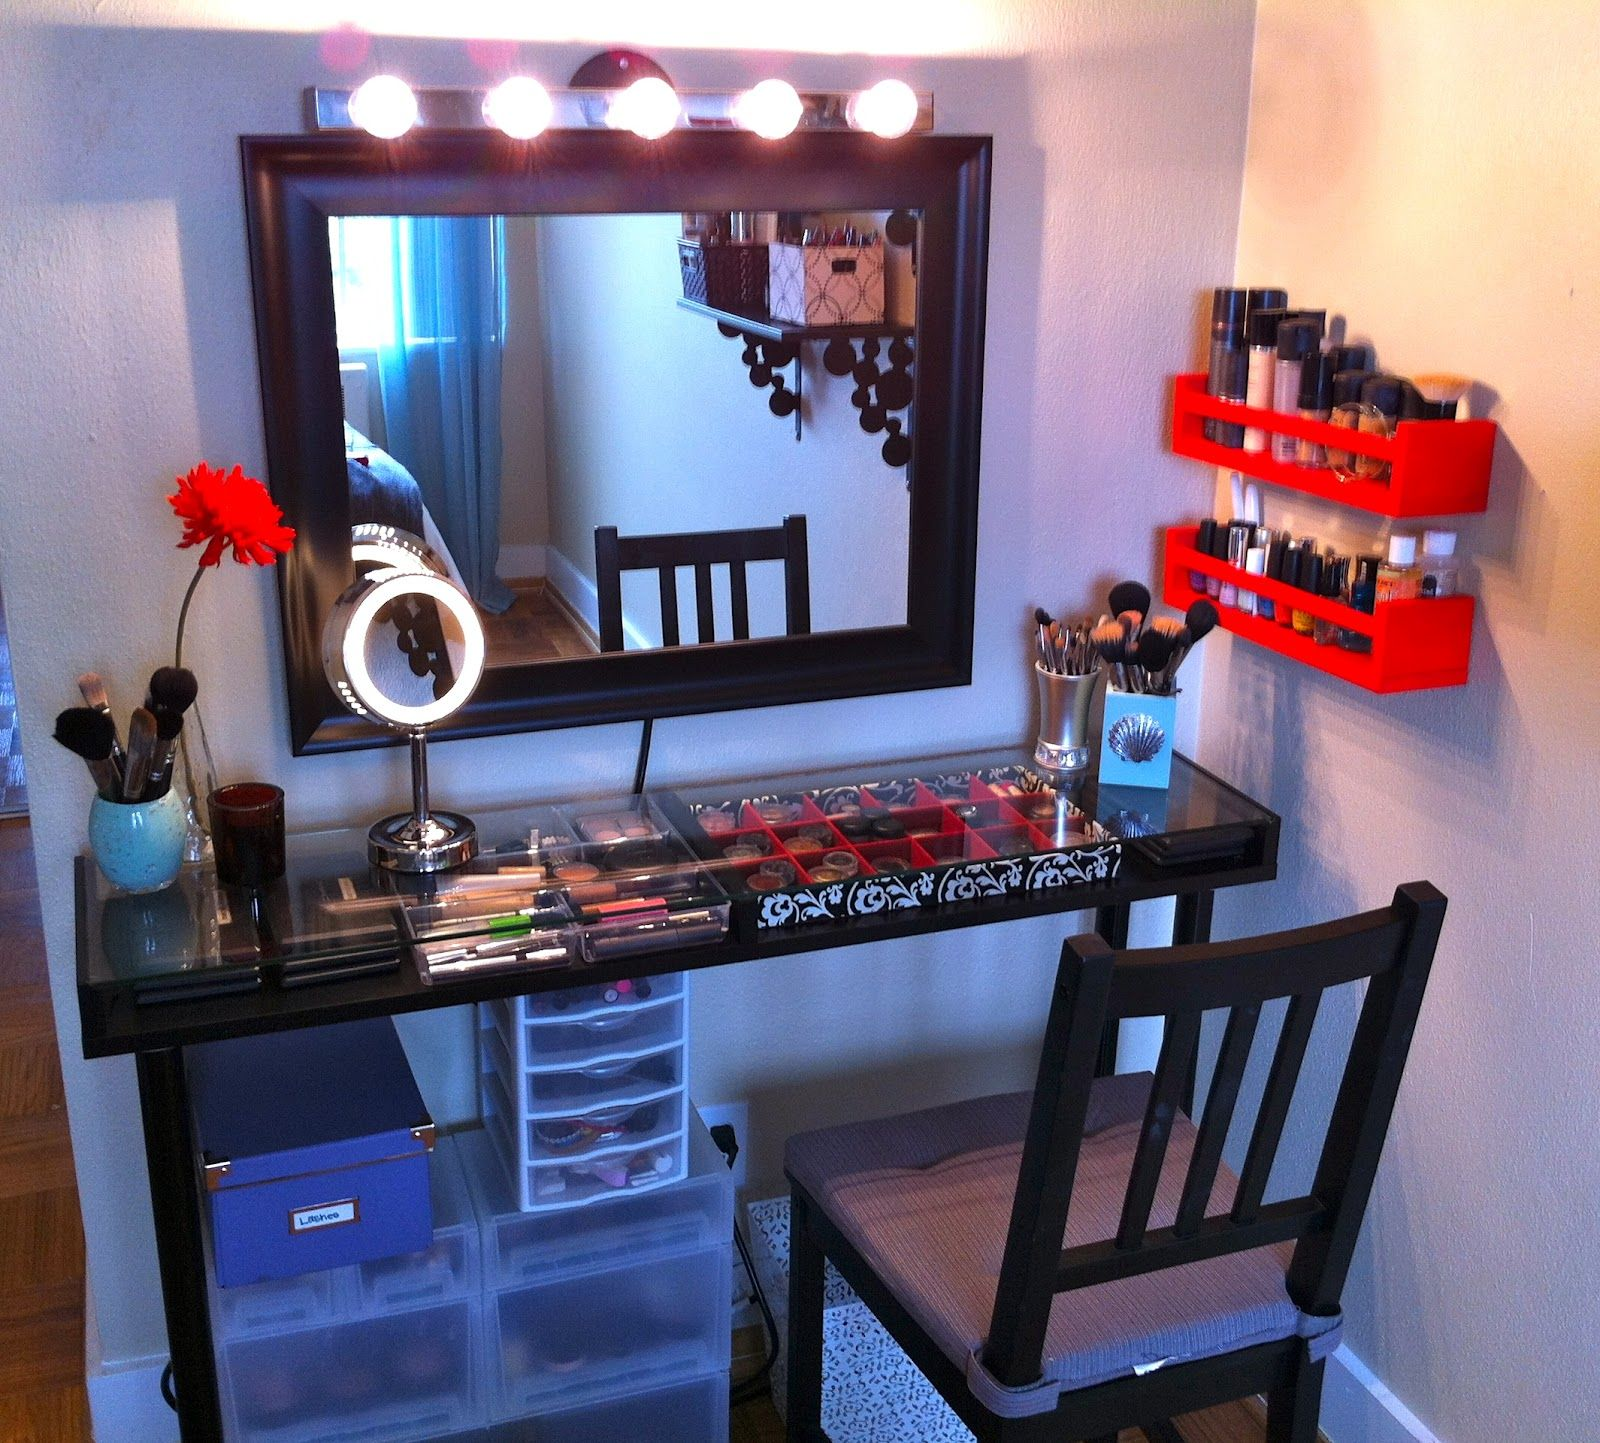 17 Best images about Dressing room on Pinterest   Diy makeup vanity  Closet  designs and Vintage rugs. 17 Best images about Dressing room on Pinterest   Diy makeup